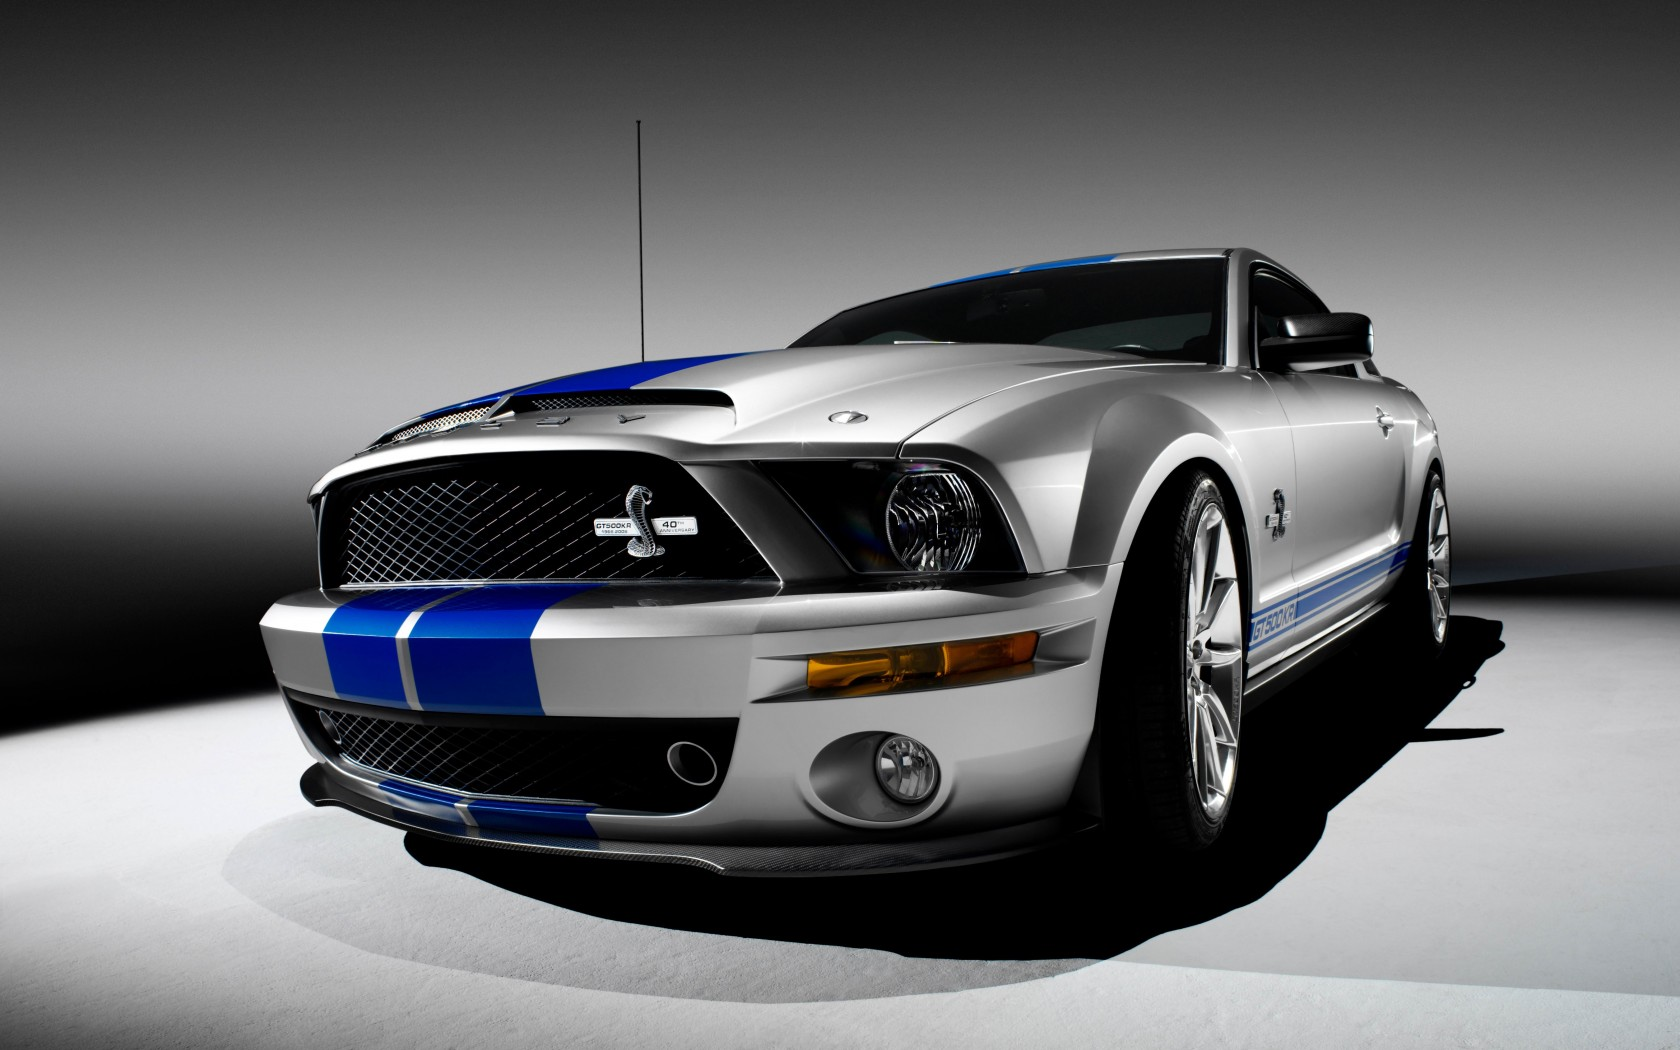 Shelby Mustang GT500KR Wallpaper for Desktop 1680x1050